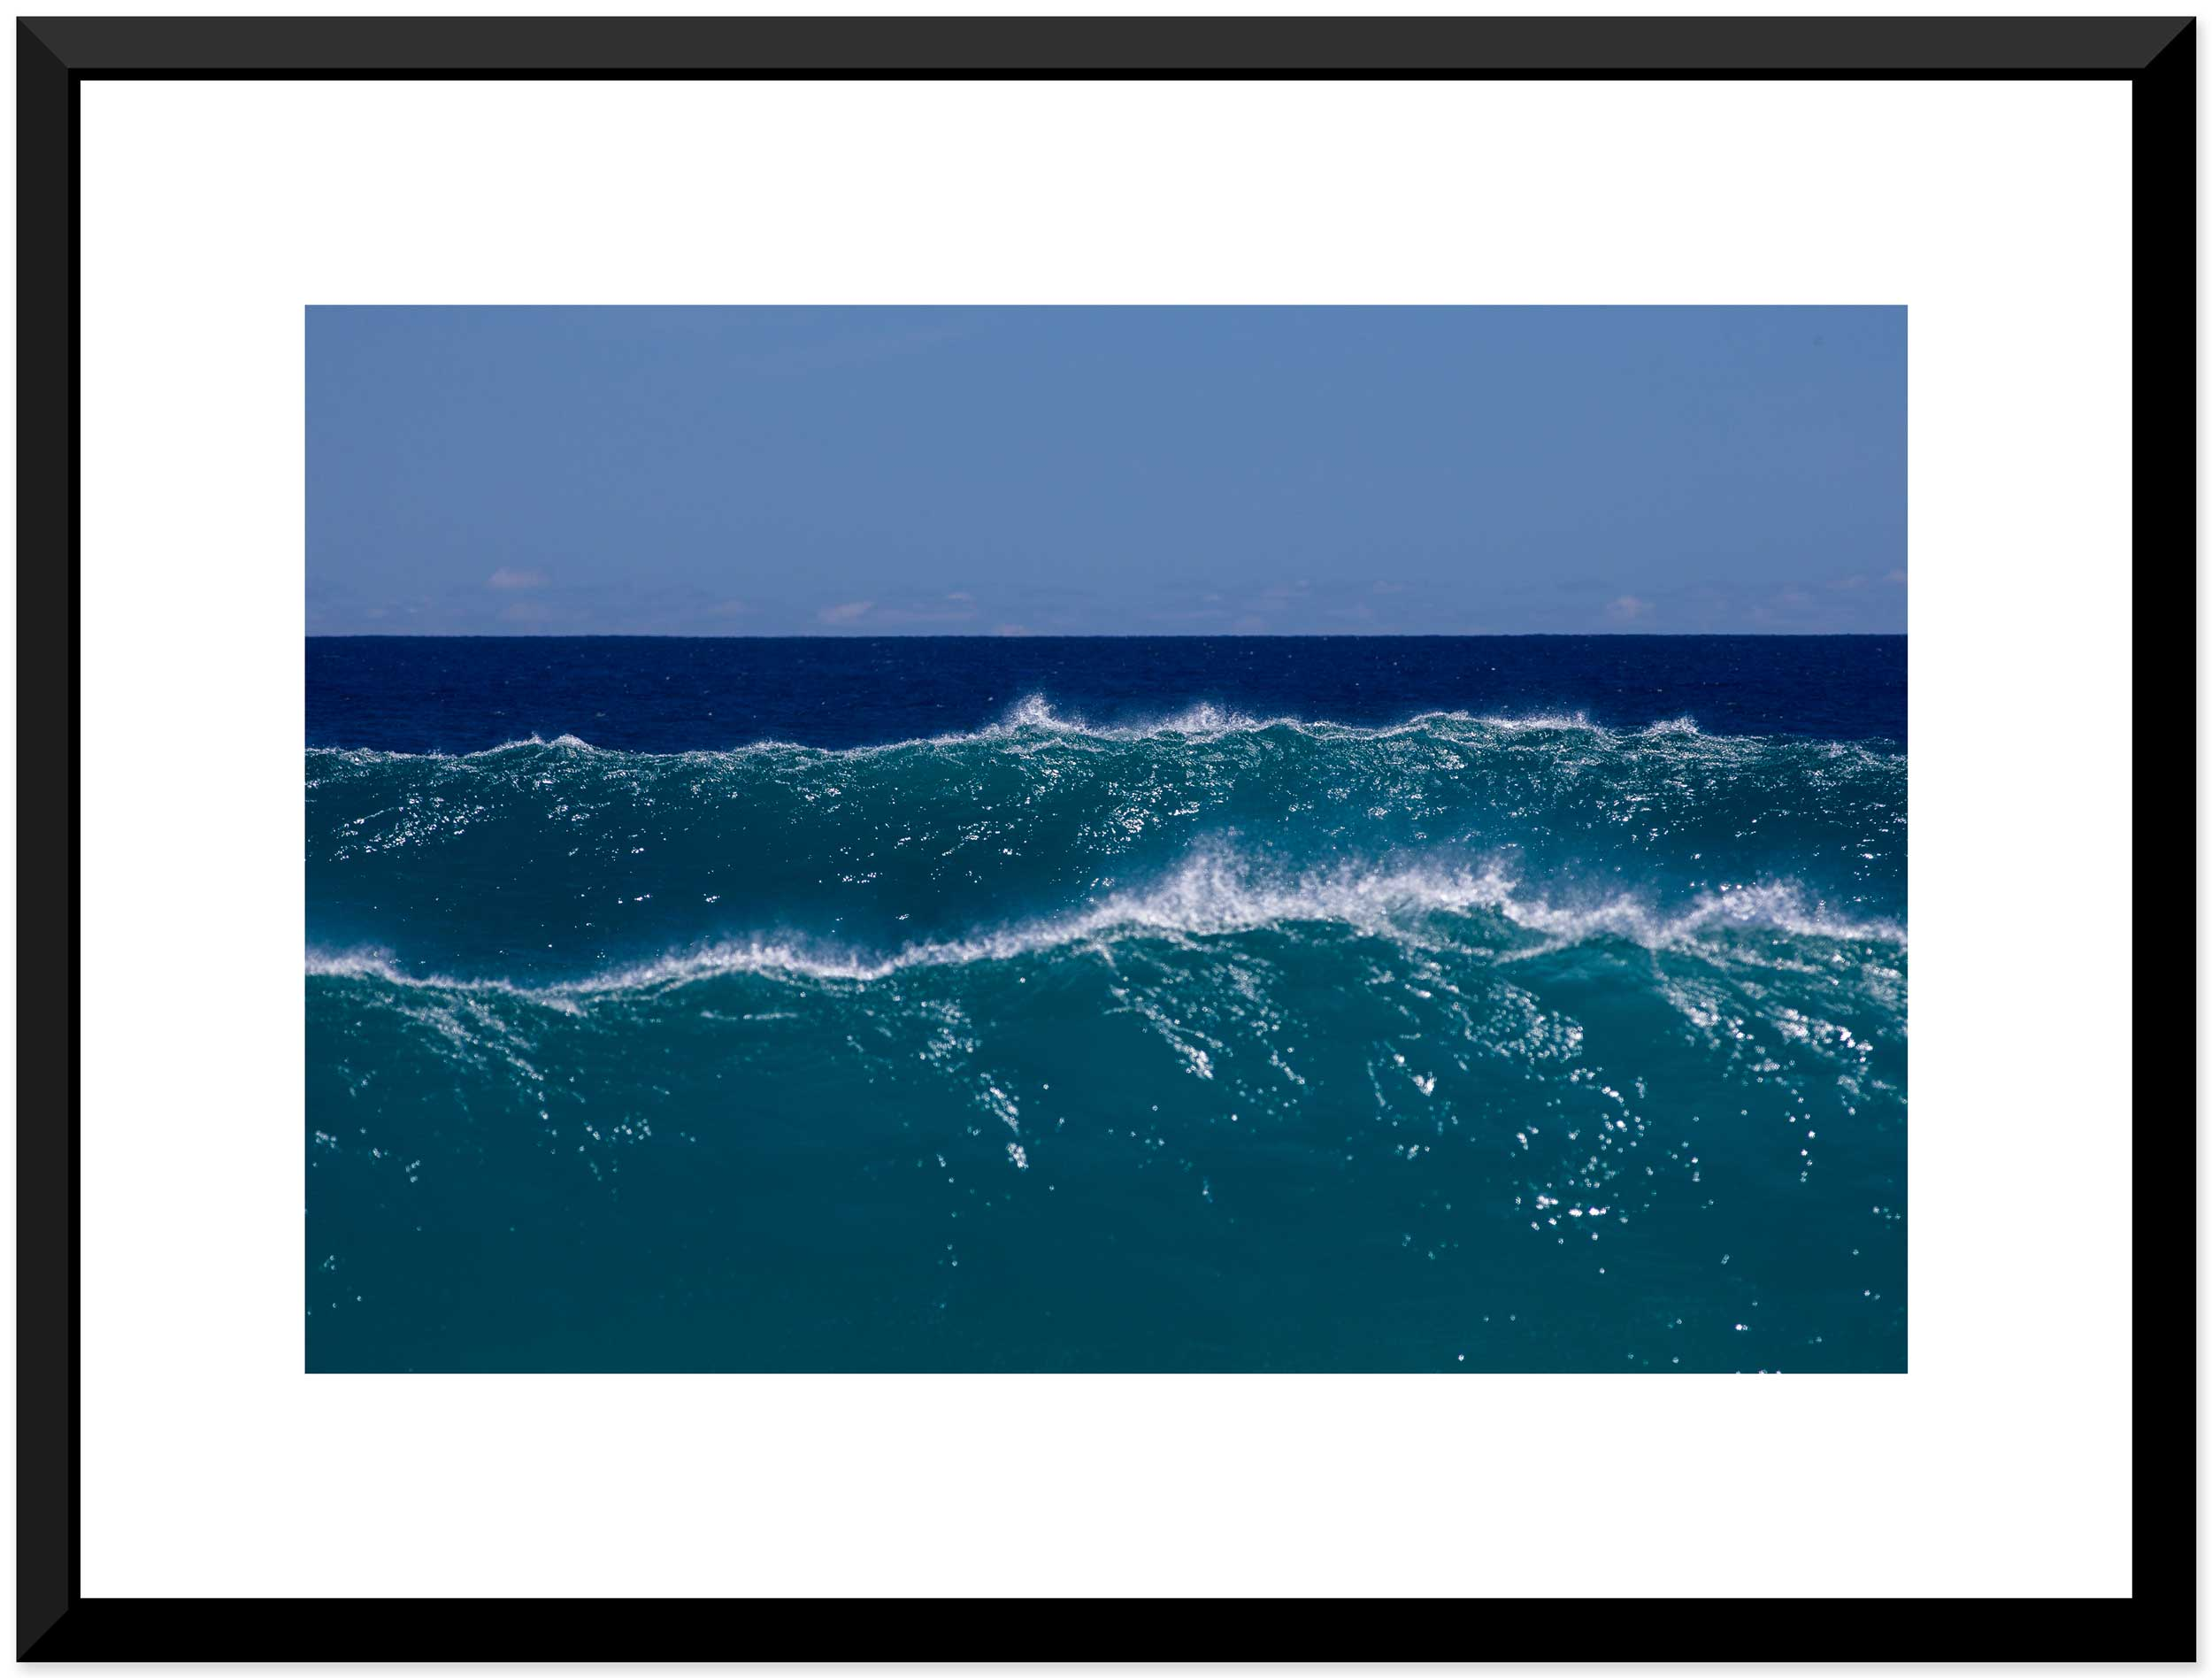 SOUTH SWELL LINES